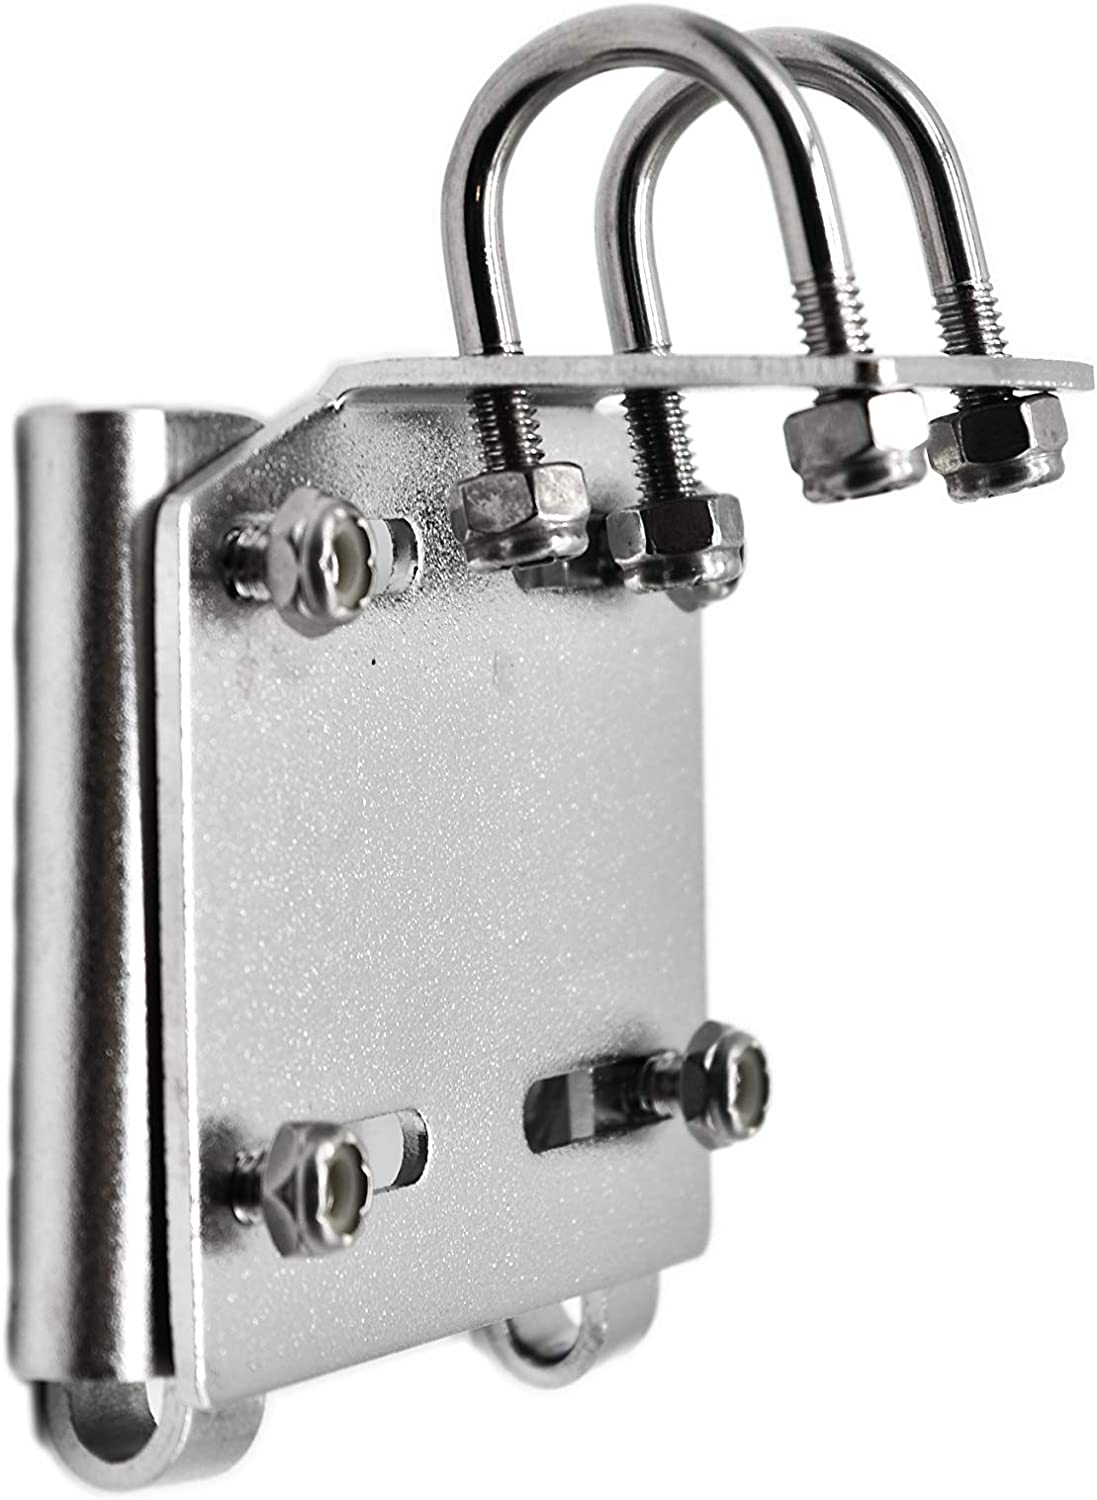 MARINE CITY Horizontal Stanchion Rail Mount Anchor Bracket for 1 Inches to 1-1//4 Inches Rails